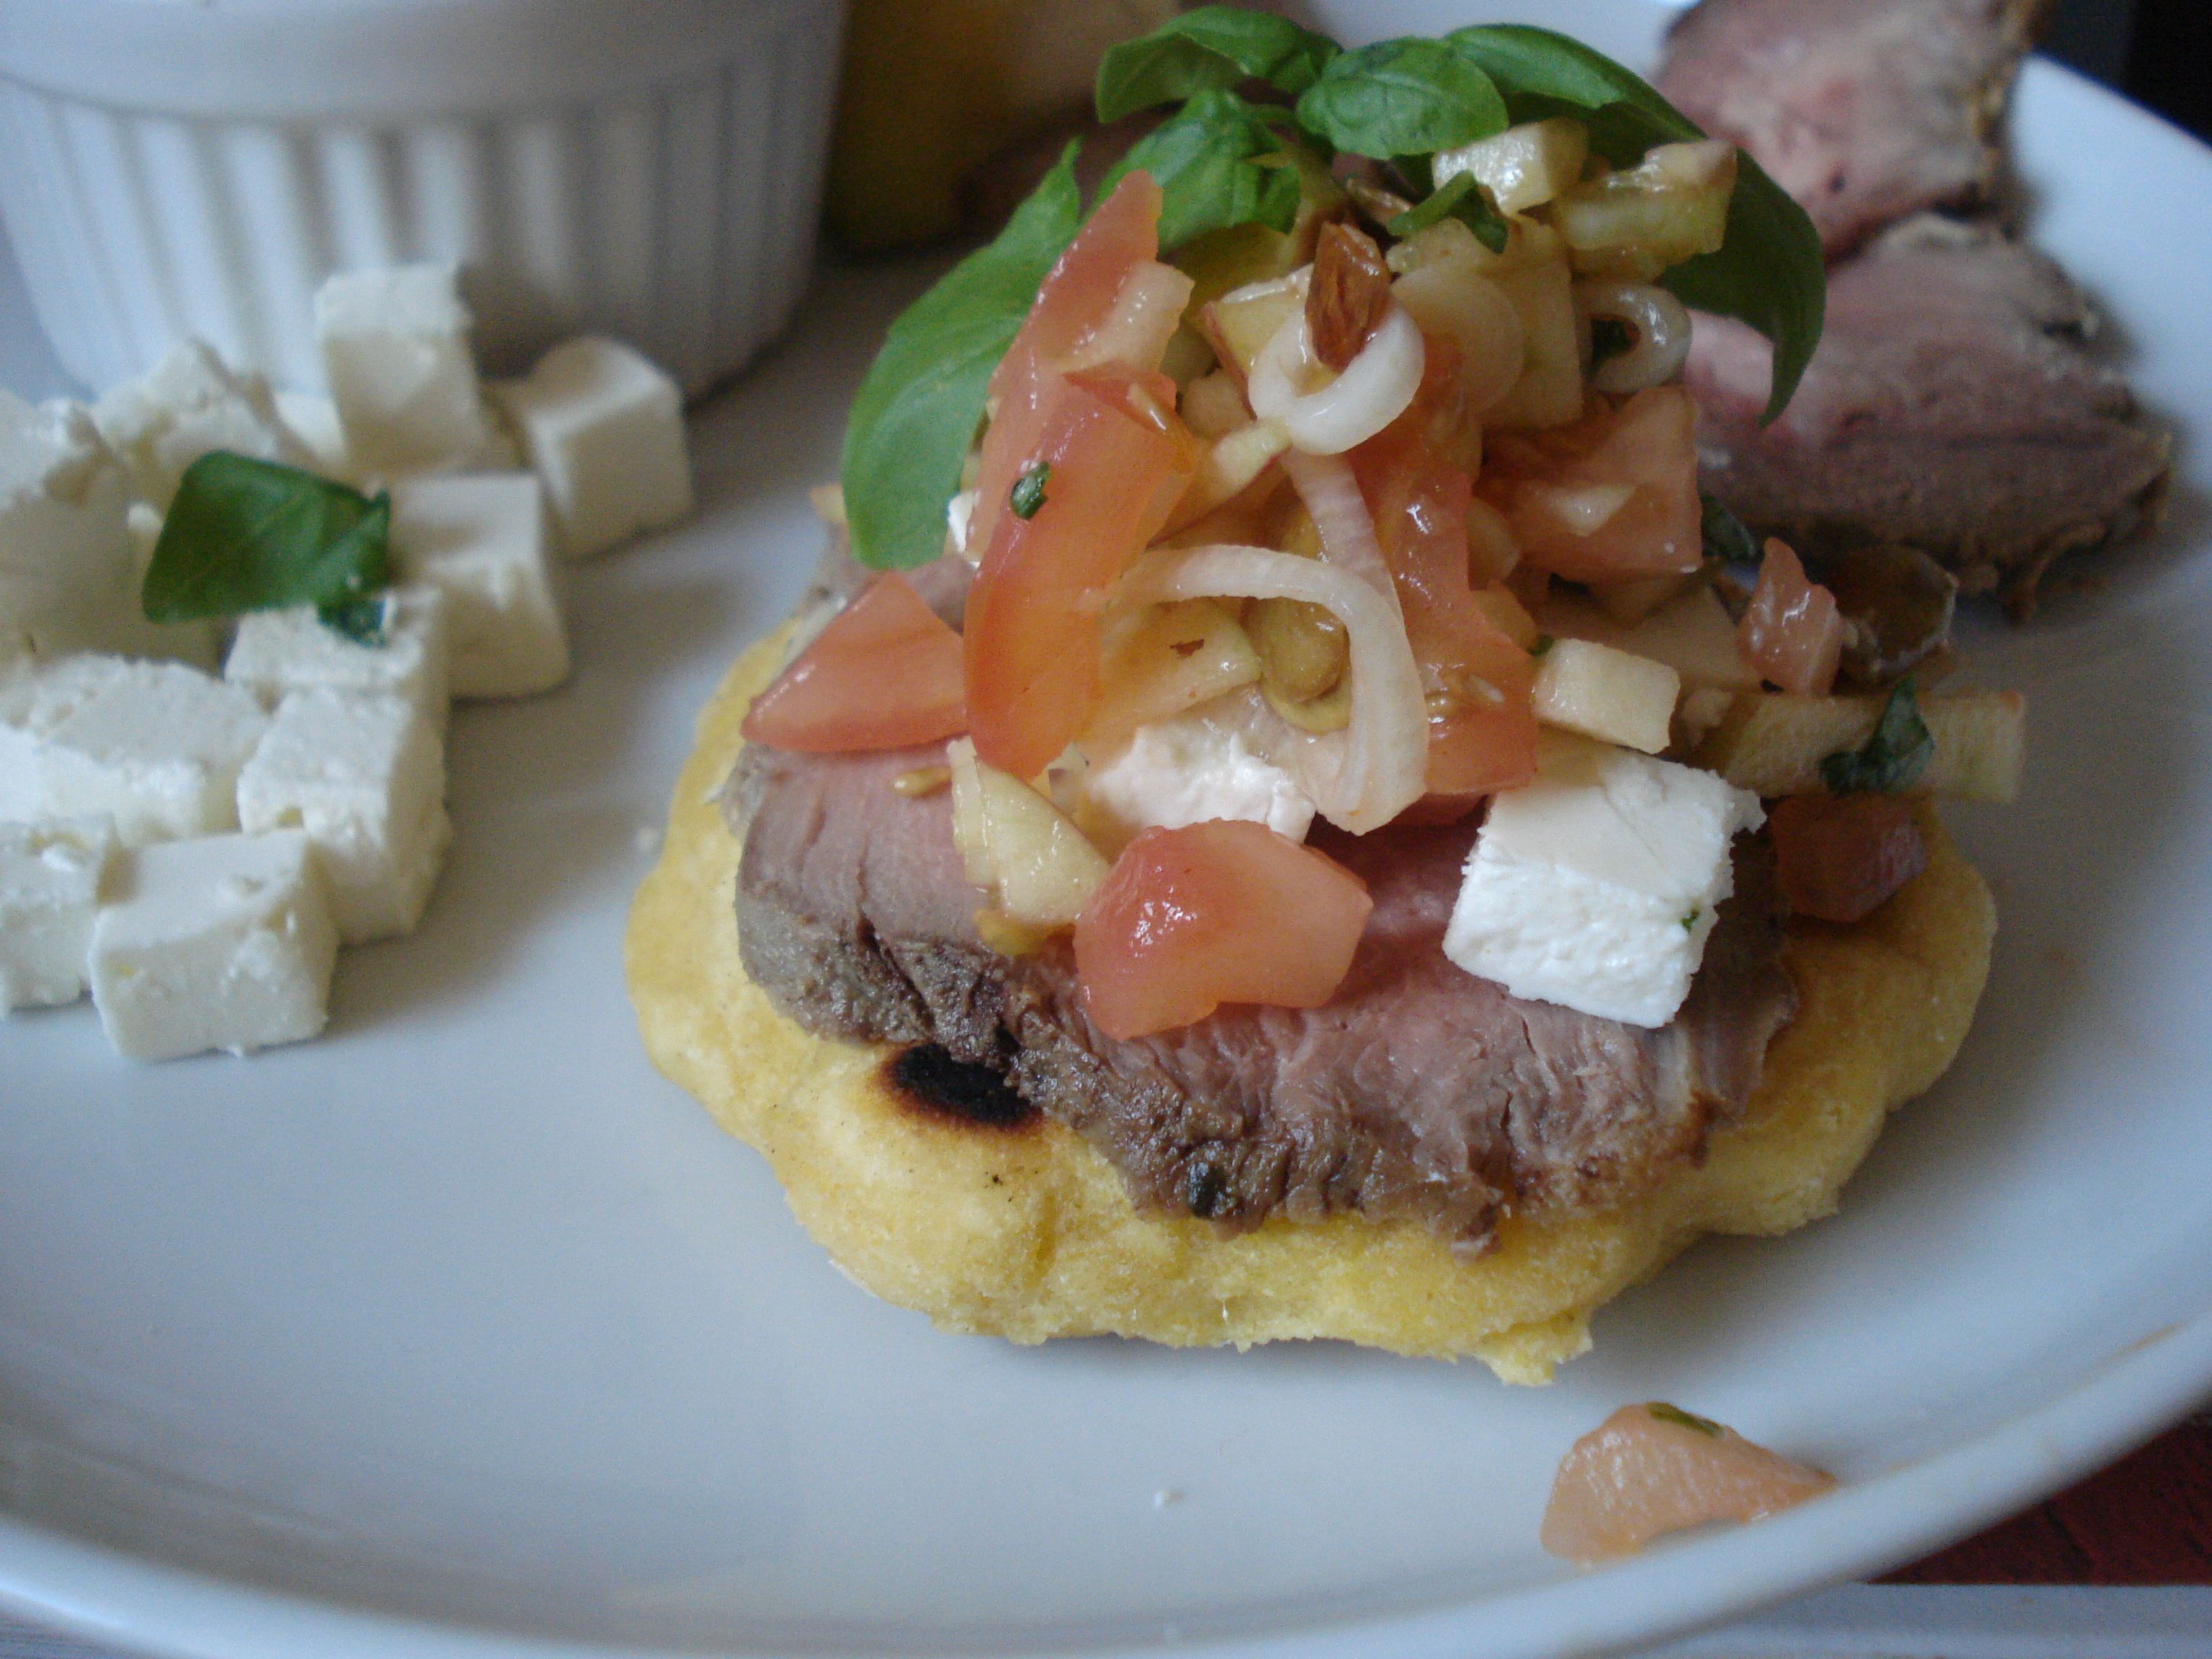 gorditas with apple salsa, feta and veal